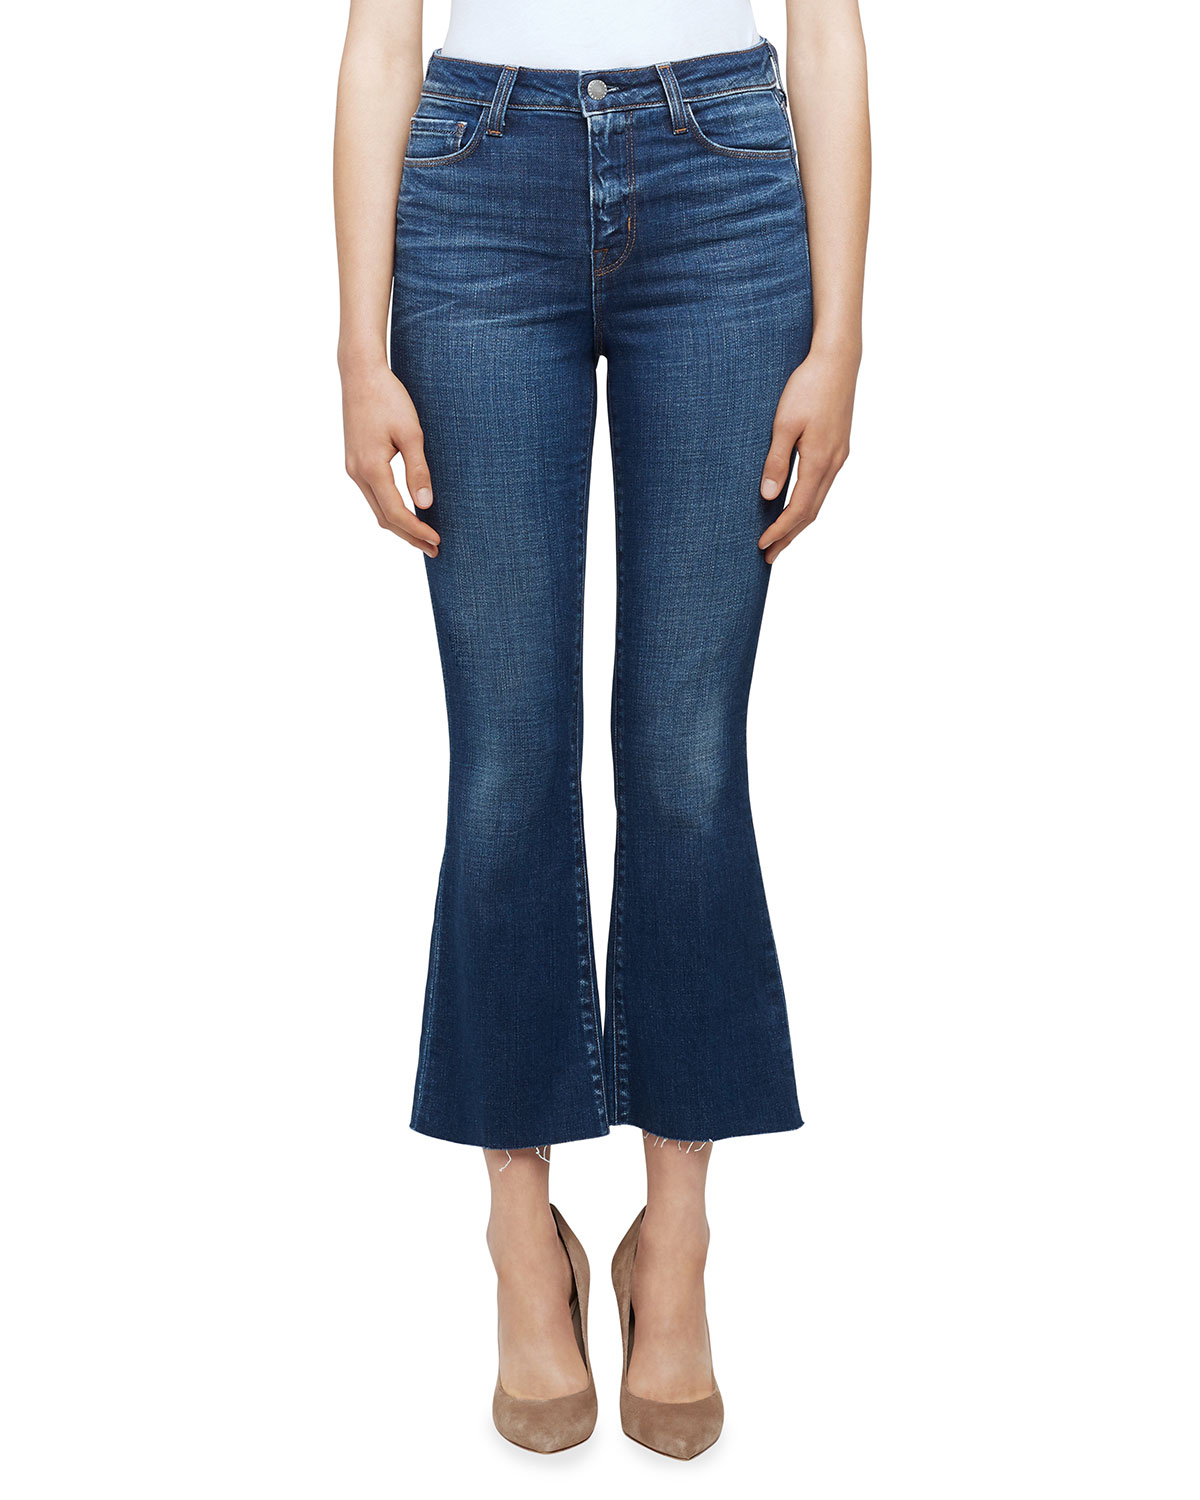 Kendra High-Rise Crop Flare Jeans with Raw Hem